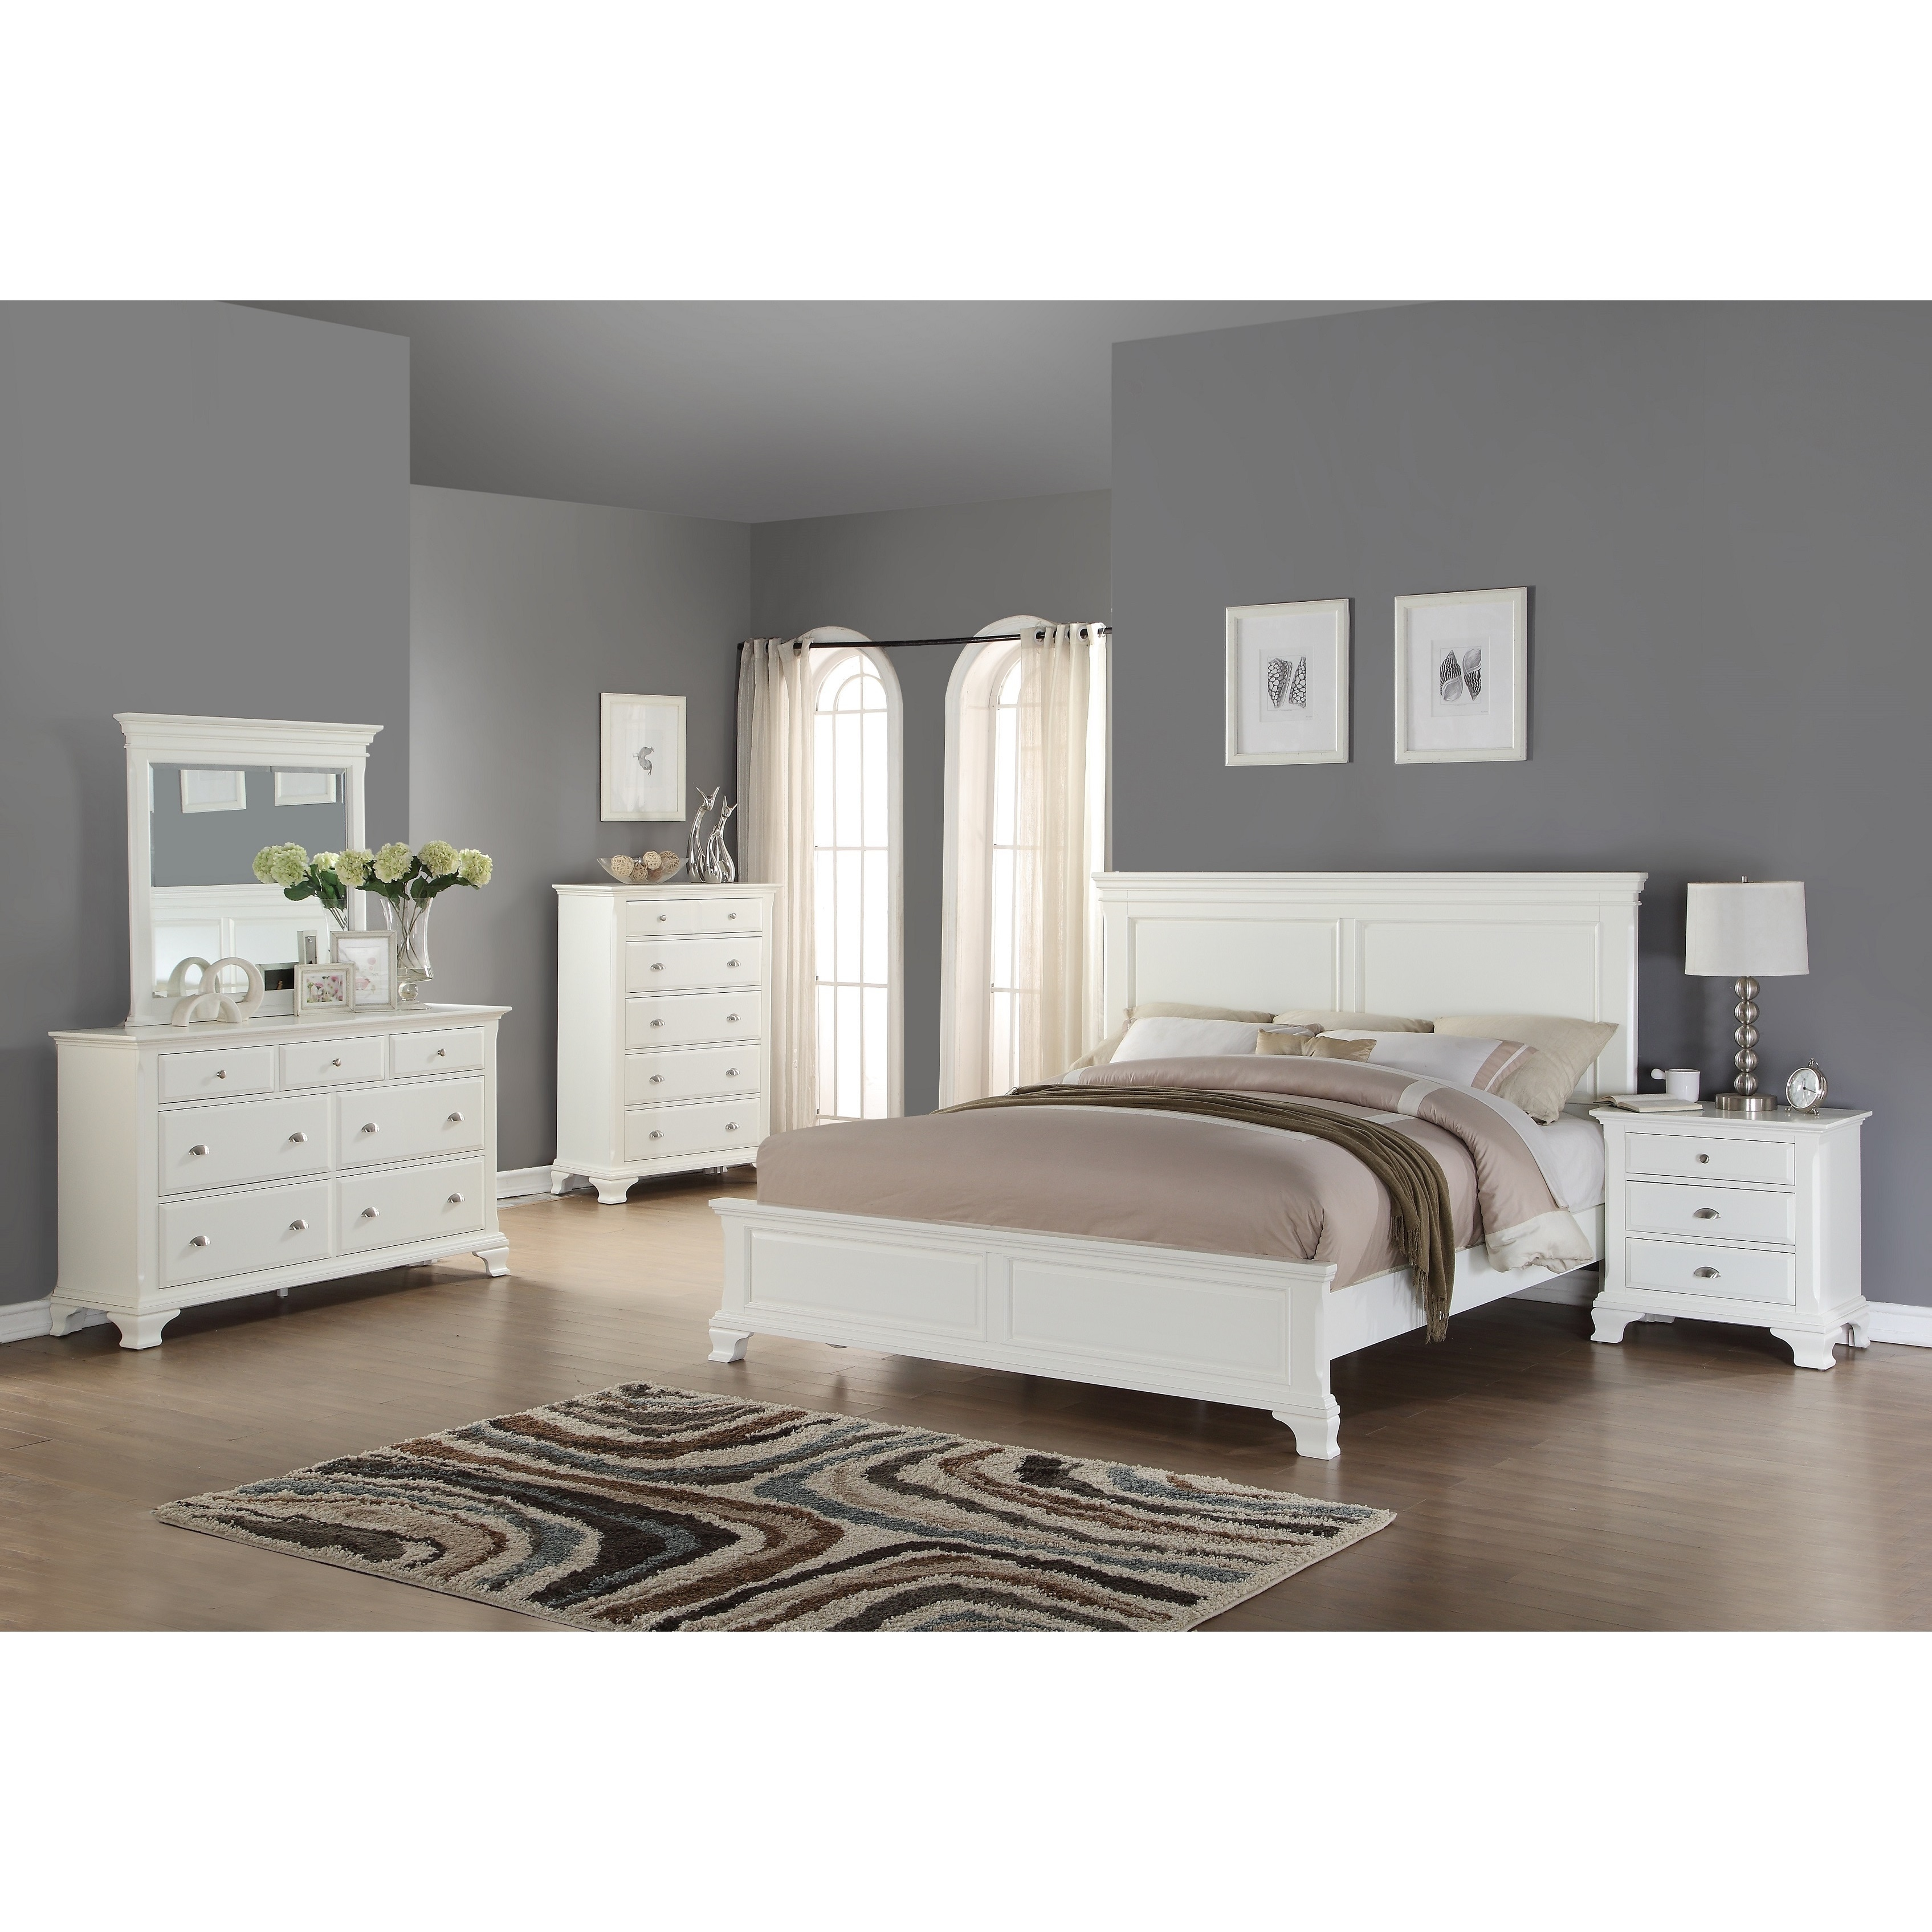 Laveno 012 White Wood Bedroom Furniture Set Includes King Bed Dresser Mirror Night Stand And Chest Overstock 12064535